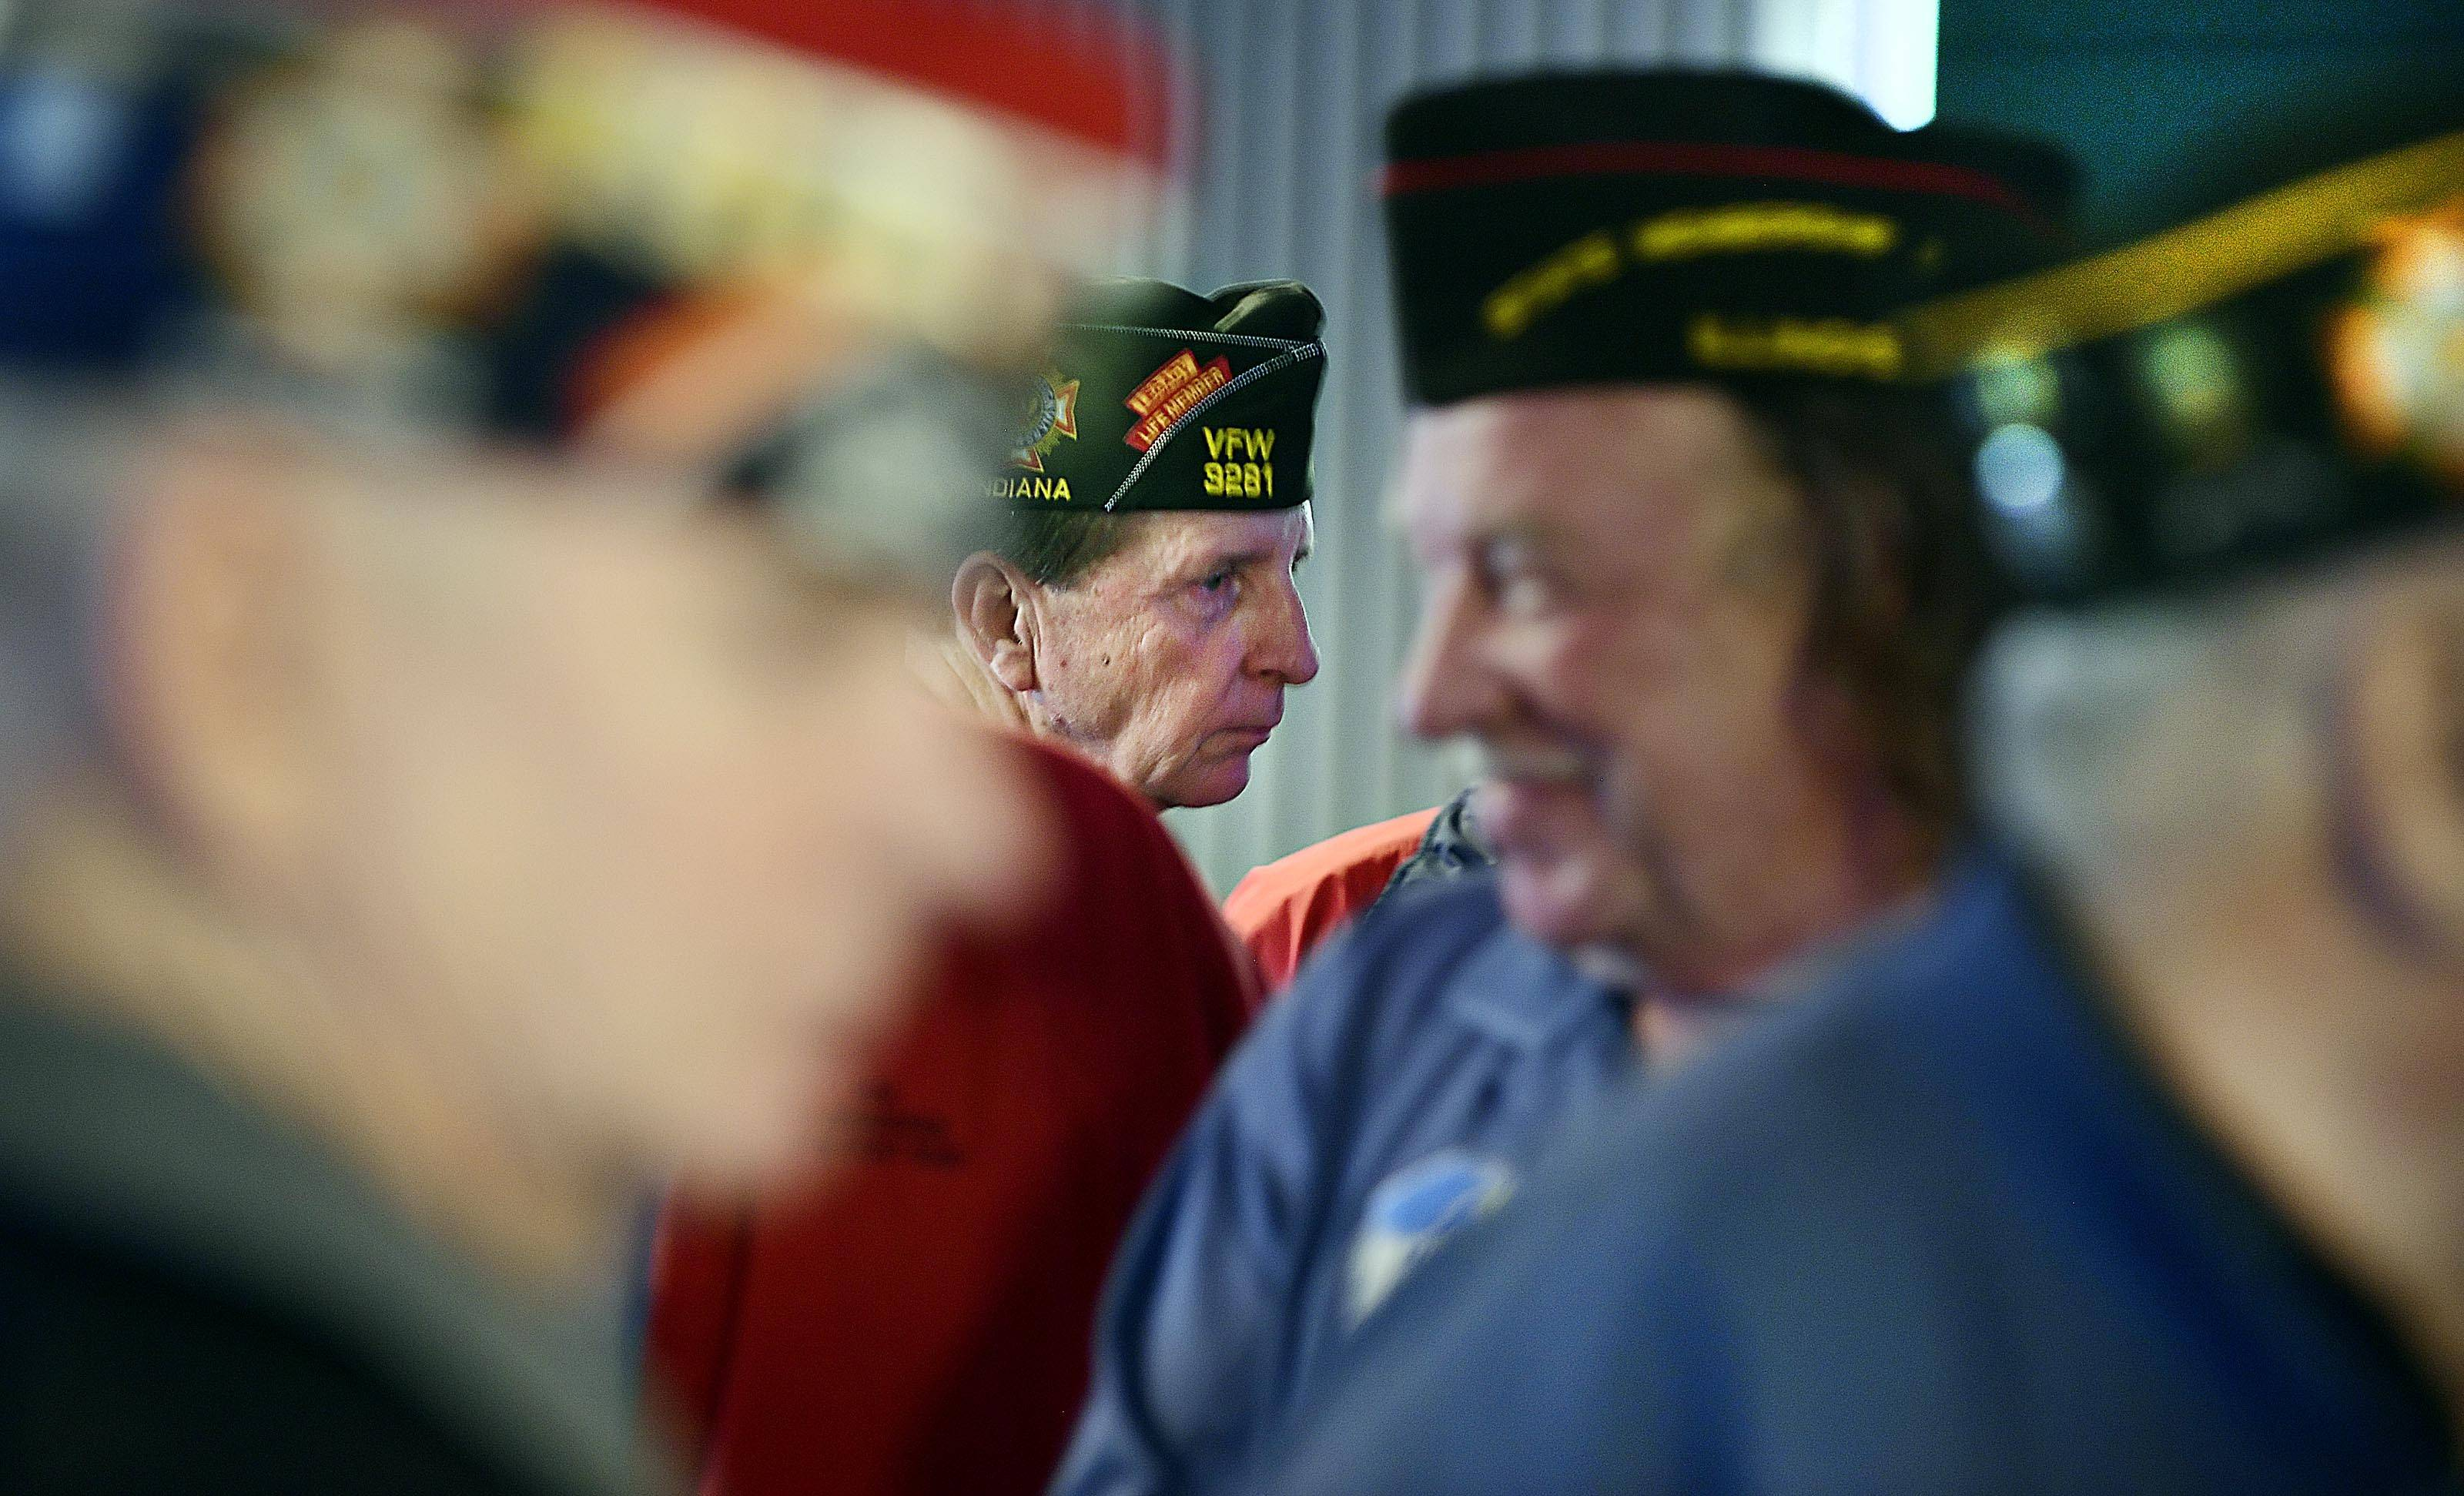 Bill Thien, Commander-in Chief of the Veterans of Foreign Wars of the United States, meets other veterans and listens to questions at the Elgin Watch City VFW Post 1307 Tuesday.